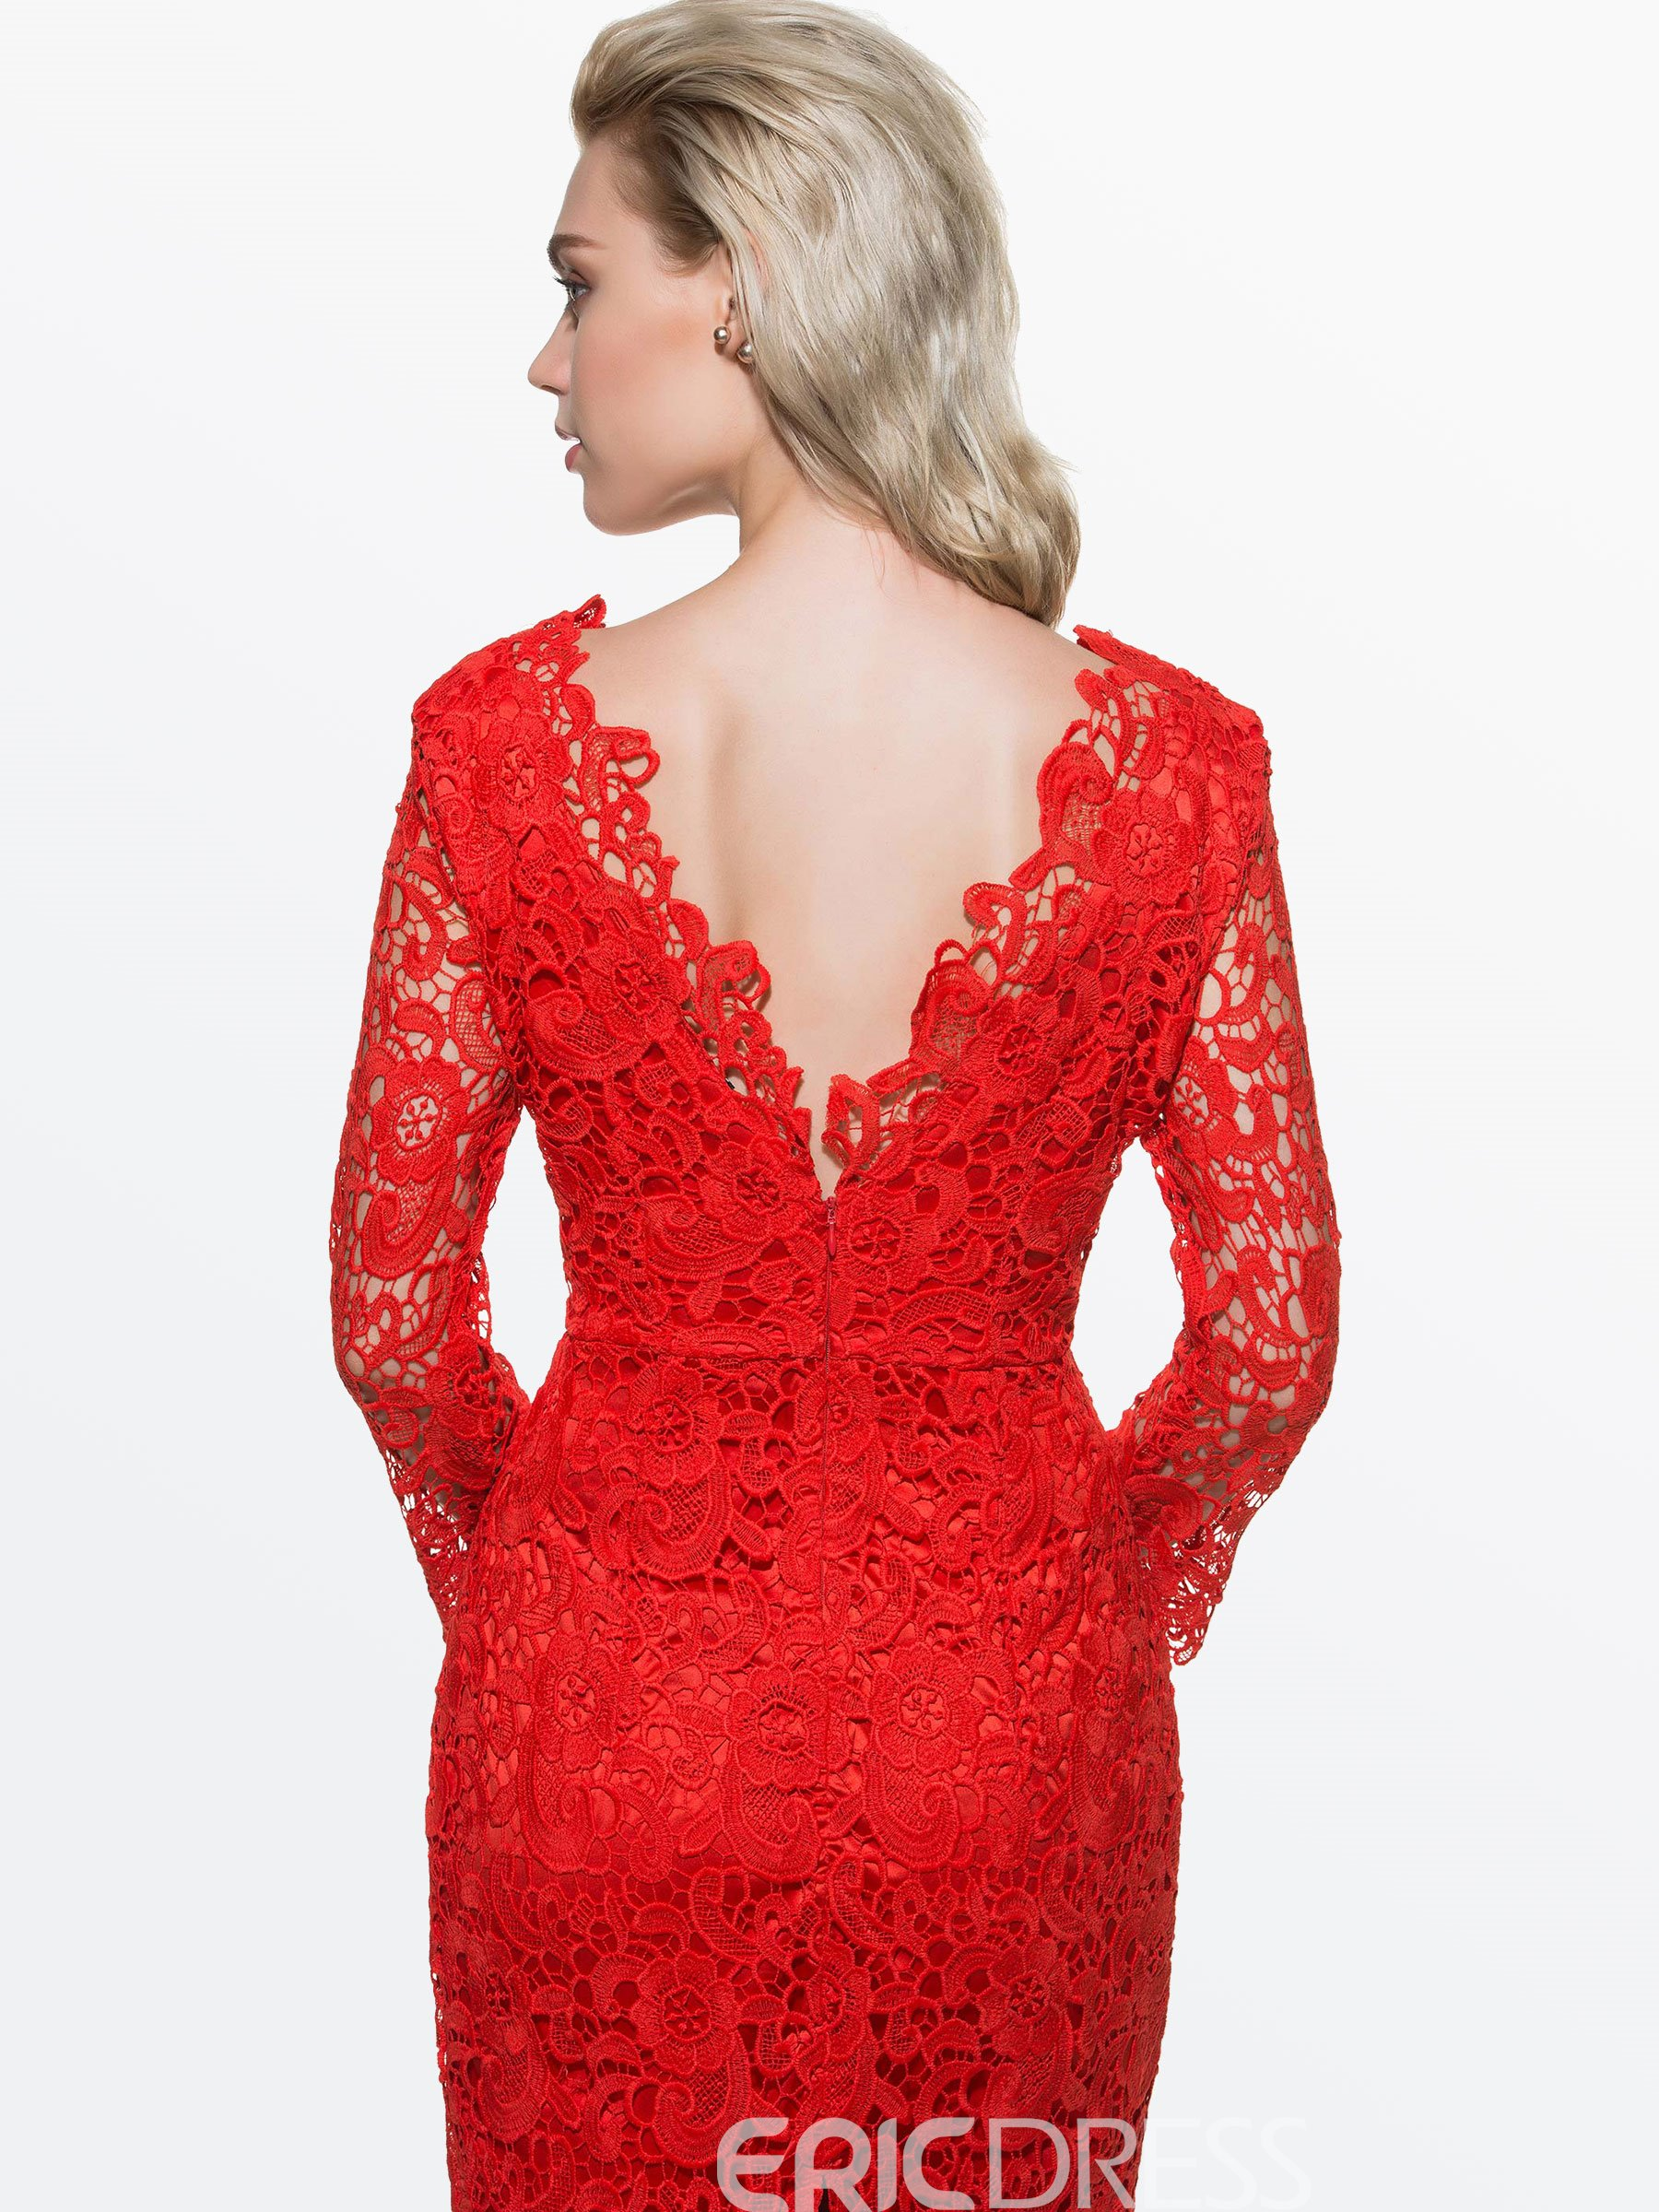 Ericdress Soild Color Long Sleeve Lace Dress